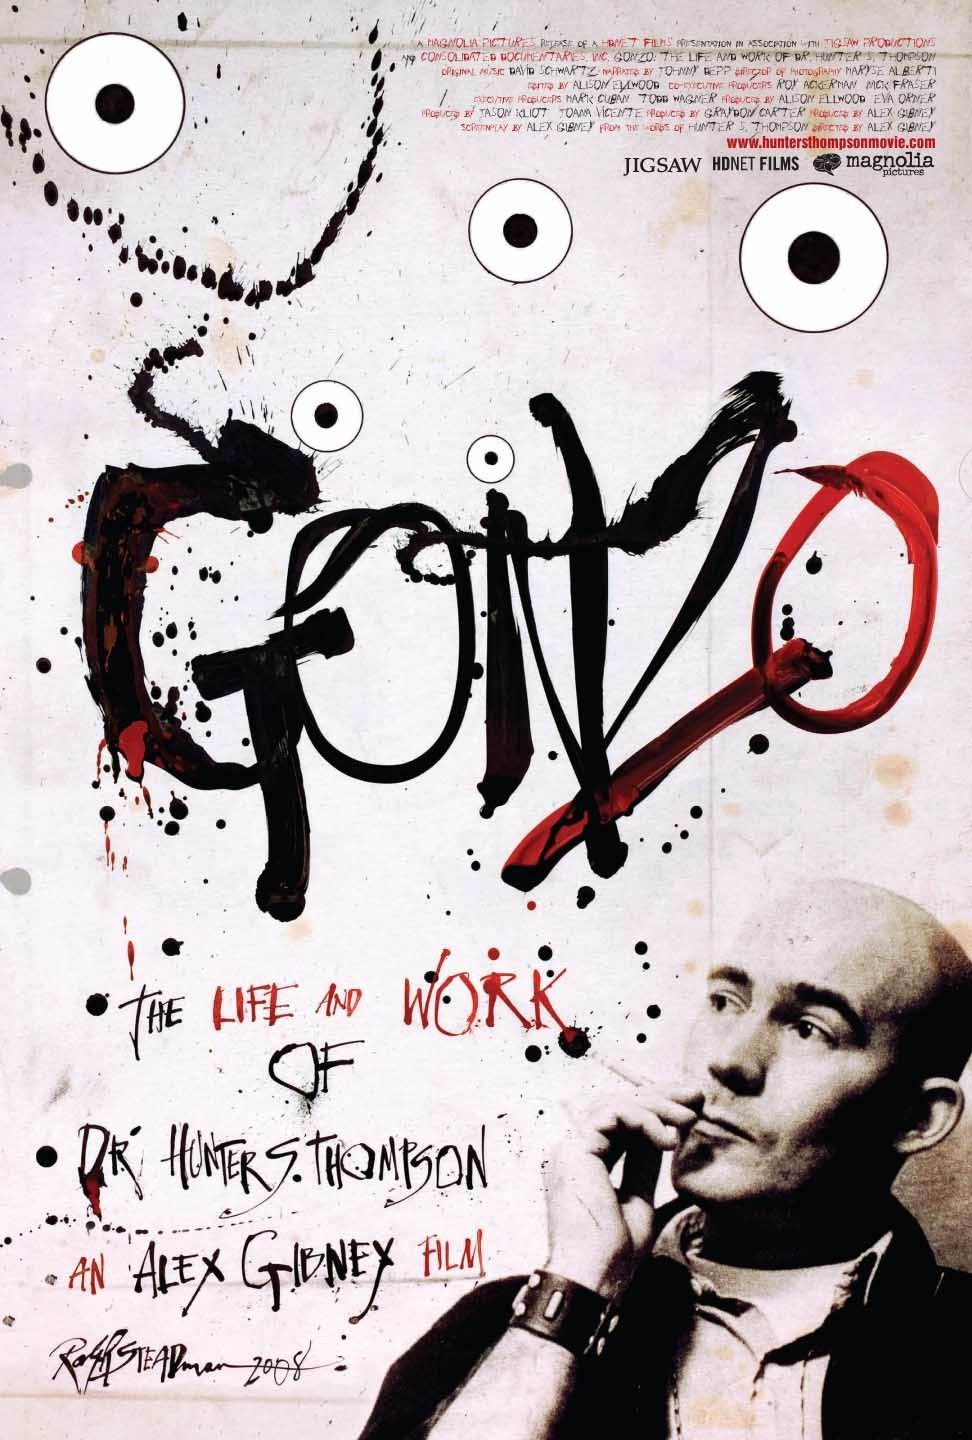 gonzo-the-life-and-work-of-dr-hunter-s-thompson poster